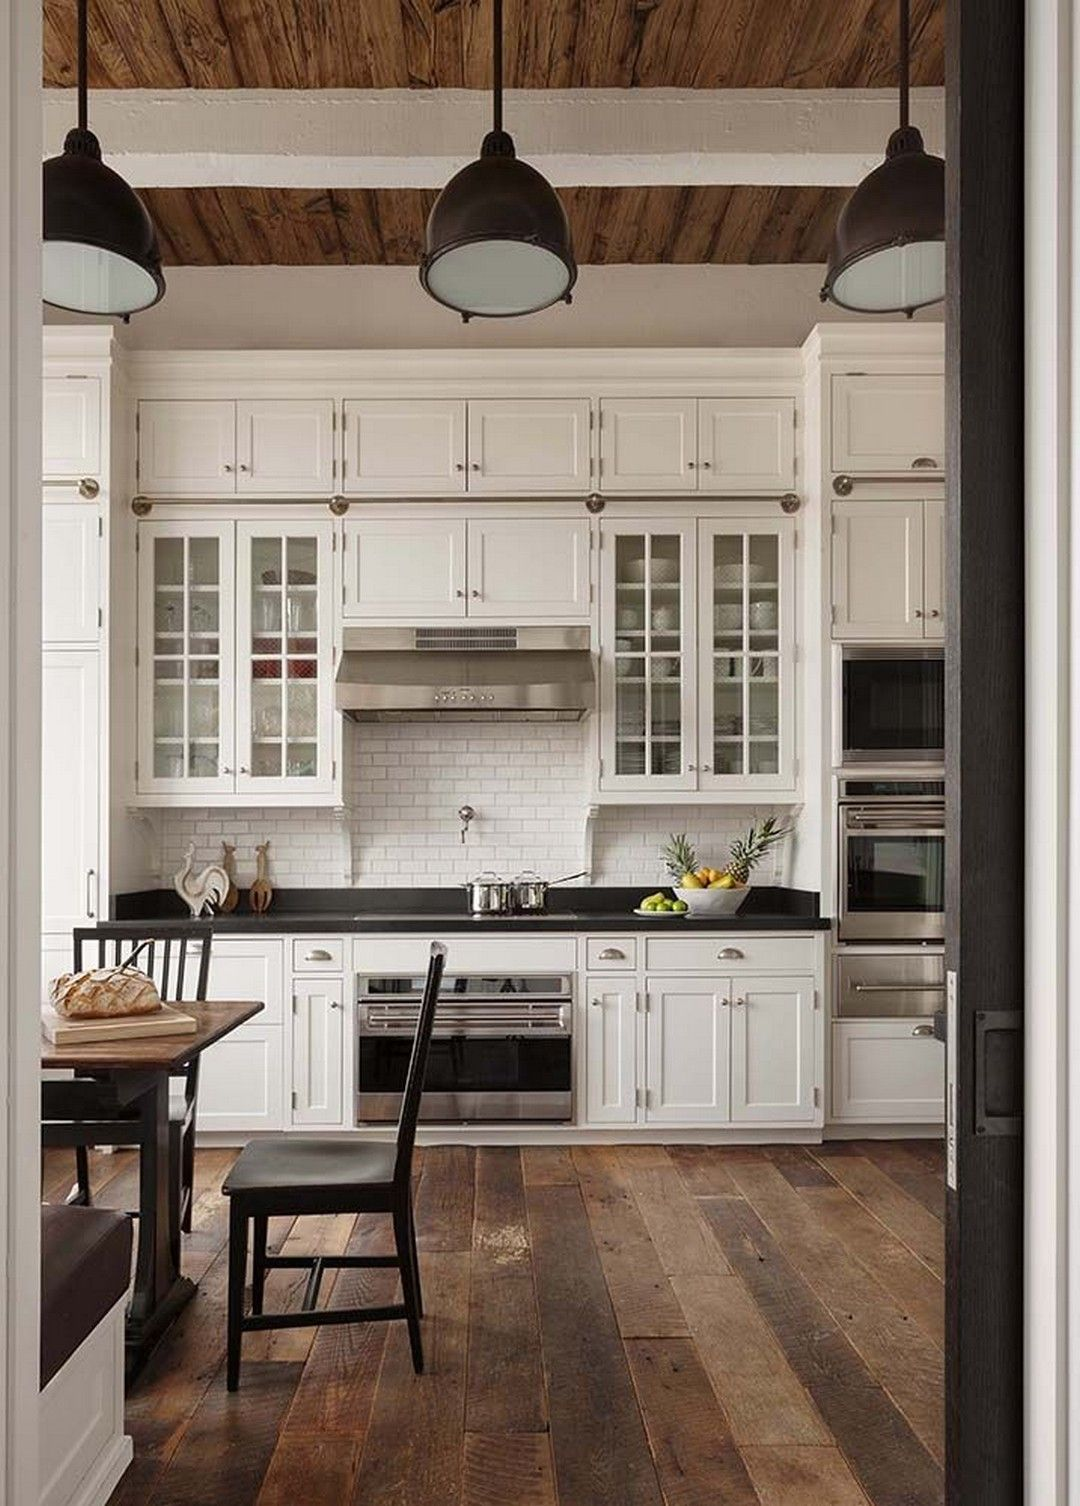 Cool 99 Farmhouse Kitchen Ideas On A Budget 2017 Http://www.99architecture